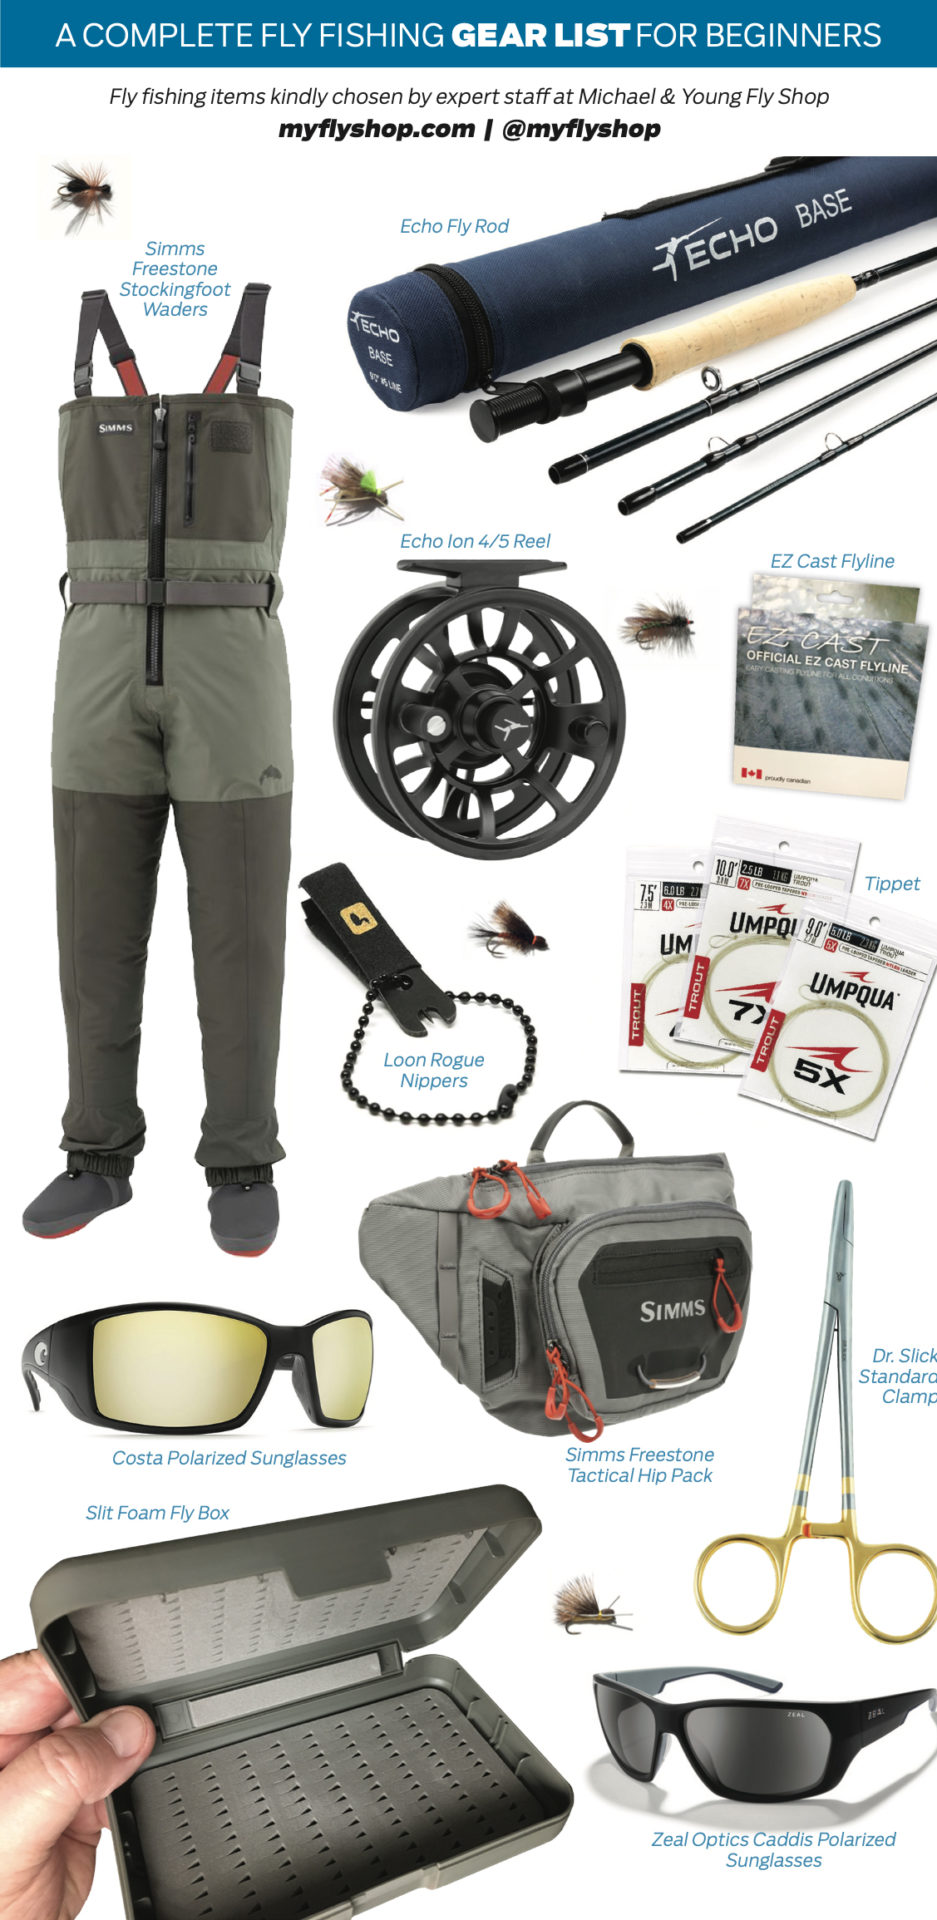 Fly fishing items kindly chosen by expert staff at Michael & Young Fly Shop.